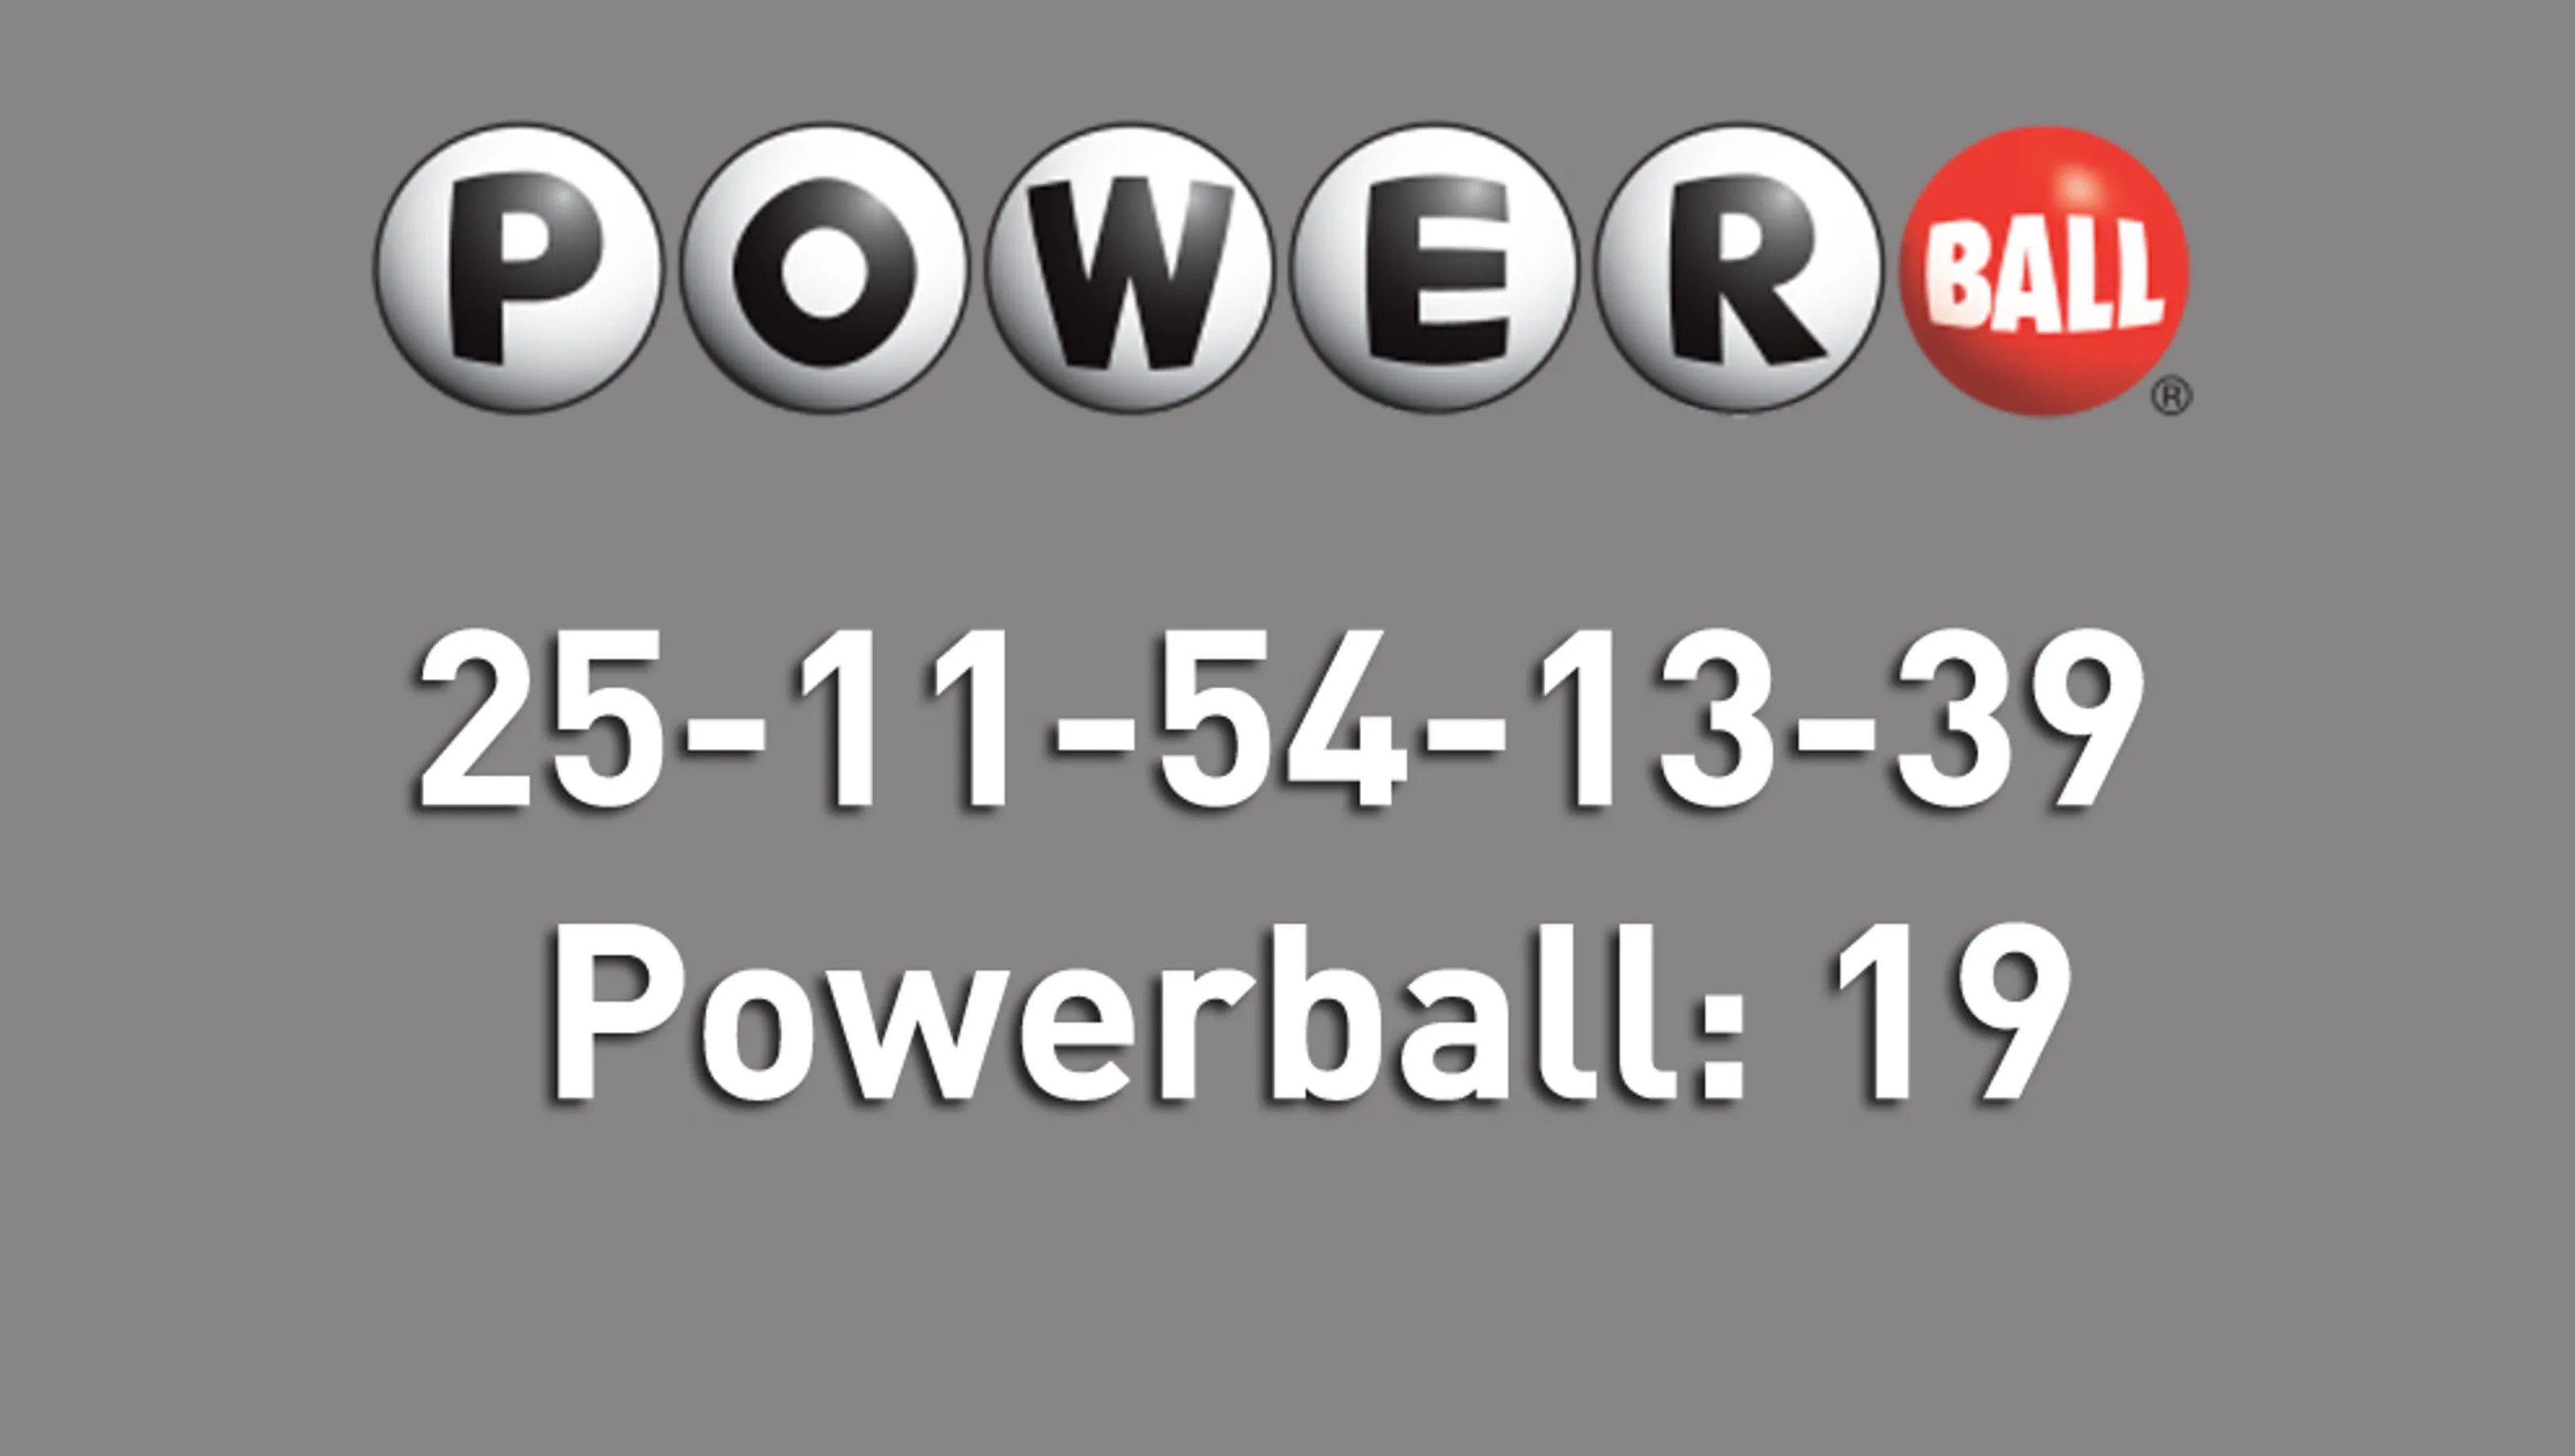 Most players think the odds of matching the Powerball to win a prize are 1 in 26 since the Powerball is drawn from a field of numbers from 1 to 26